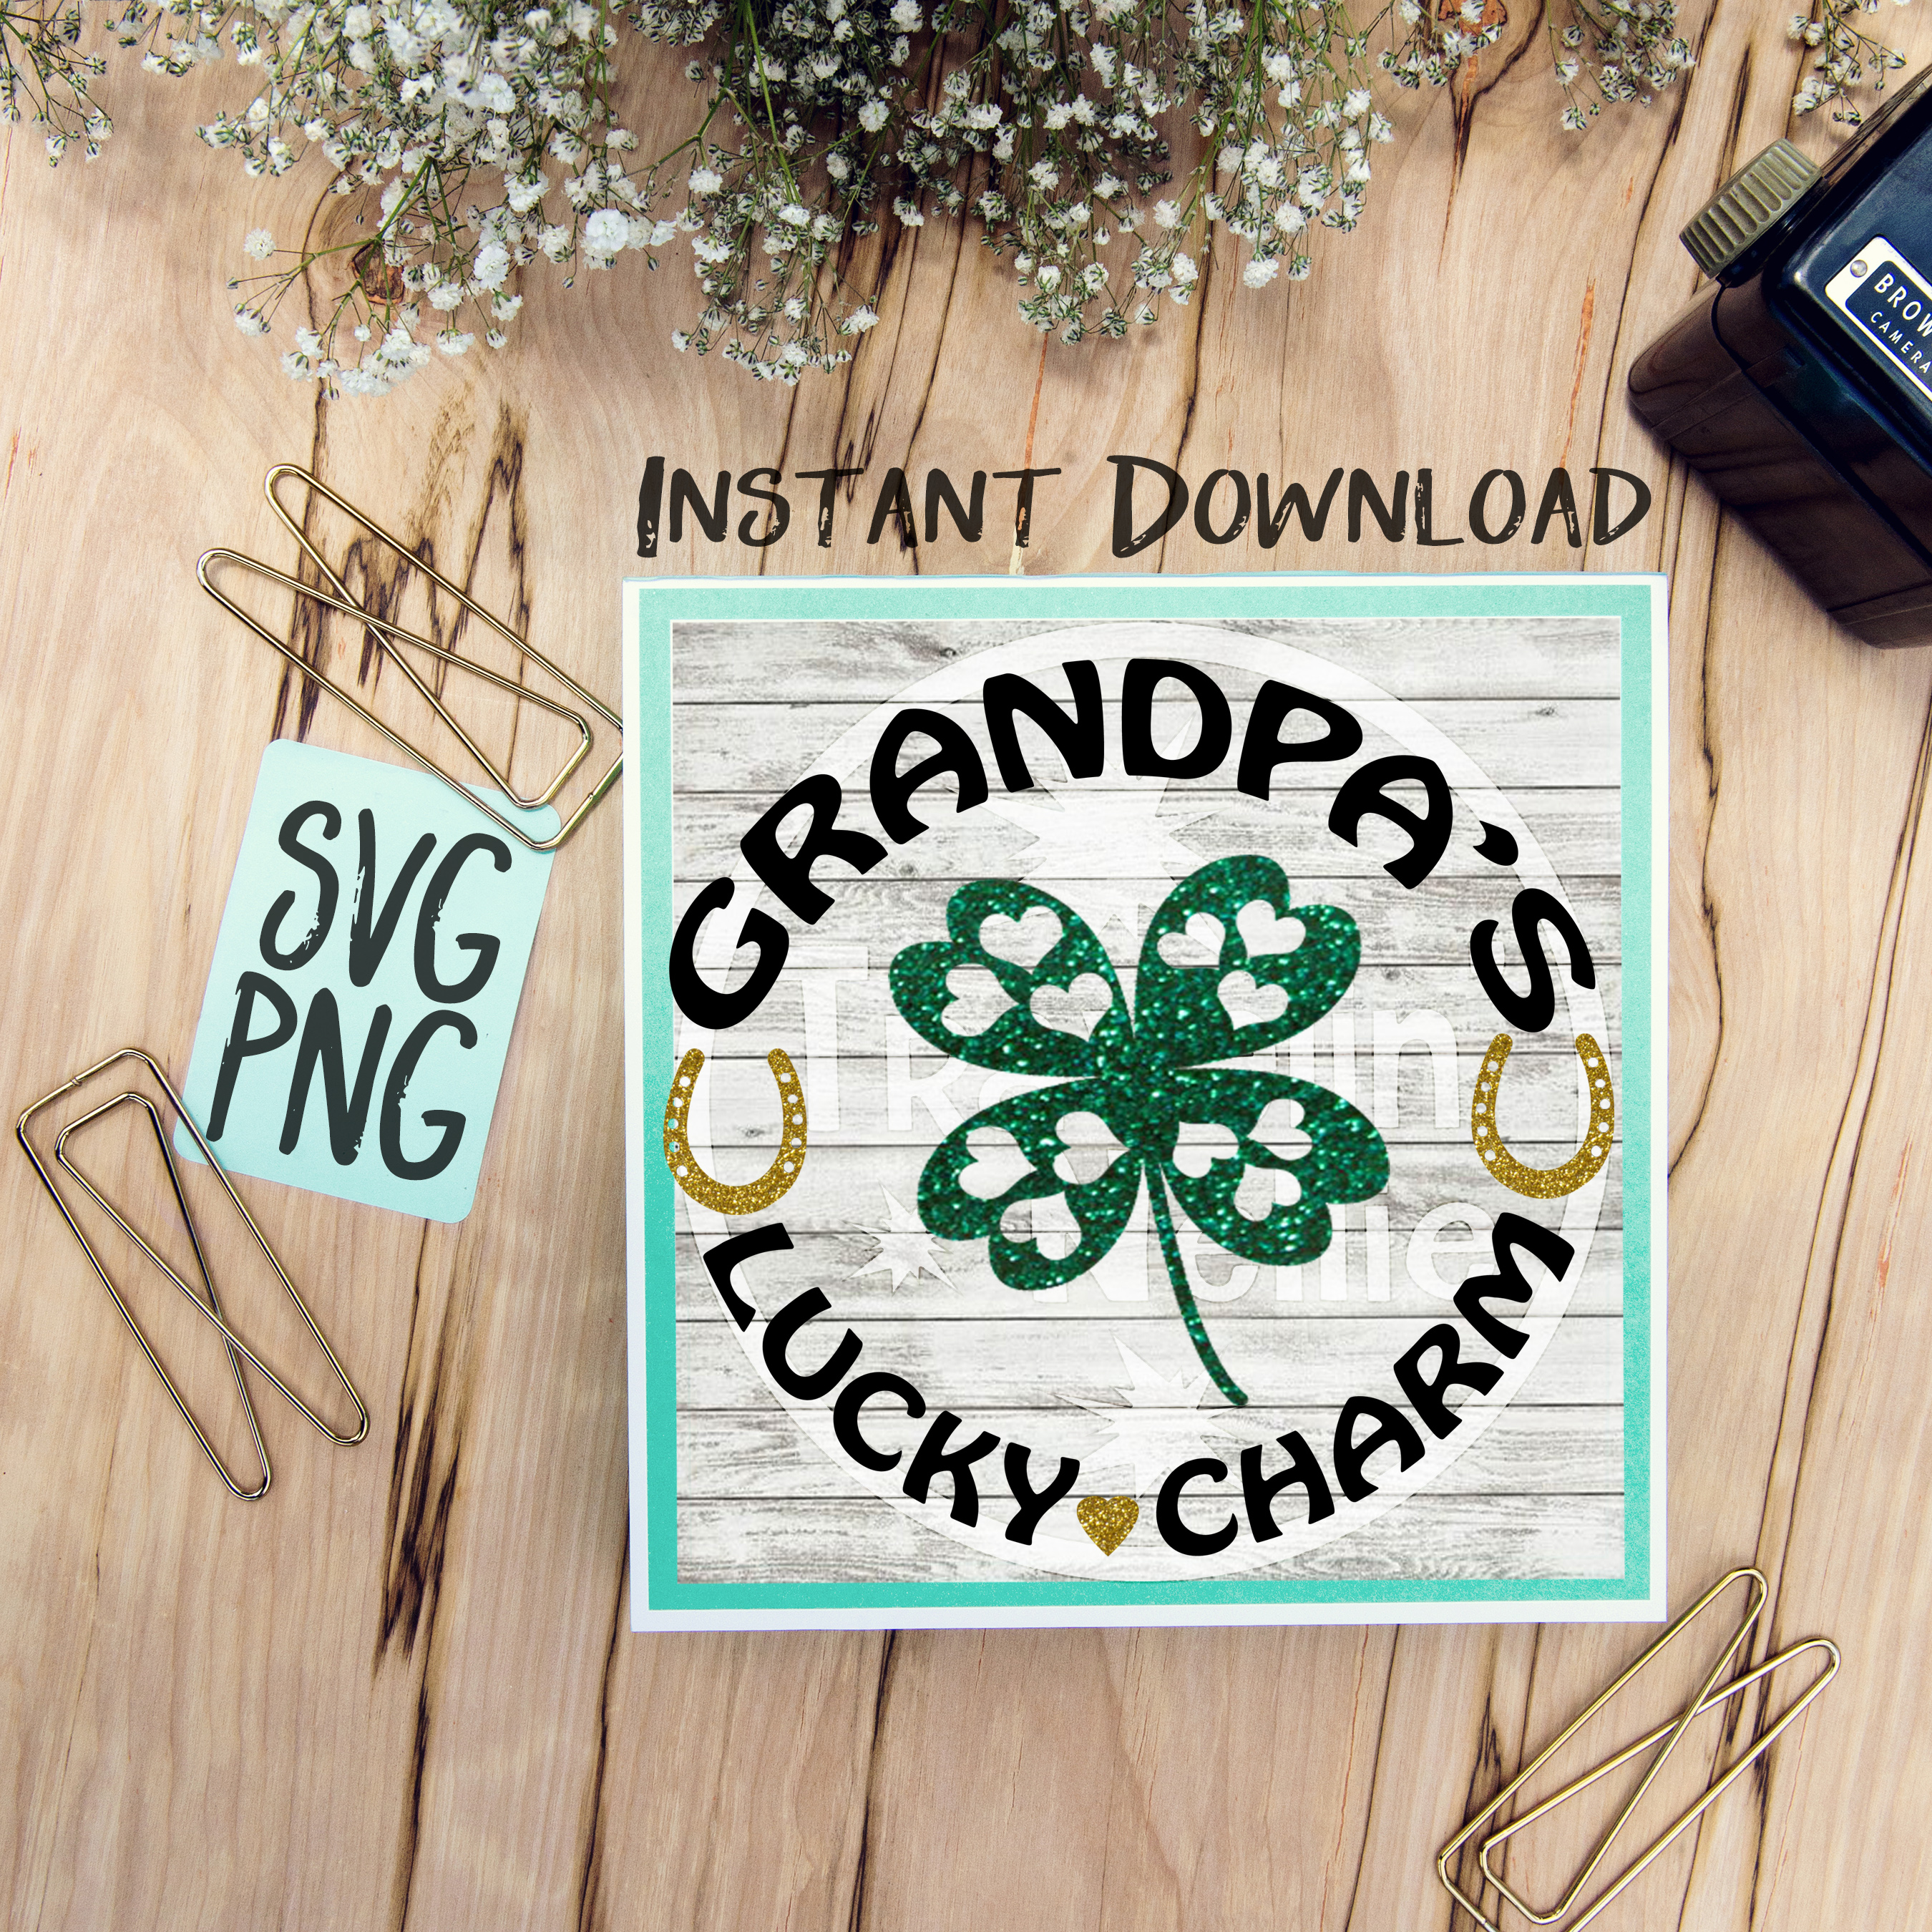 Grandpa's Lucky Charm SVG PNG Cricut Cameo Silhouette Brother Scan & Cut Crafters Cutting Files for Vinyl Cutting Sign Making example image 1